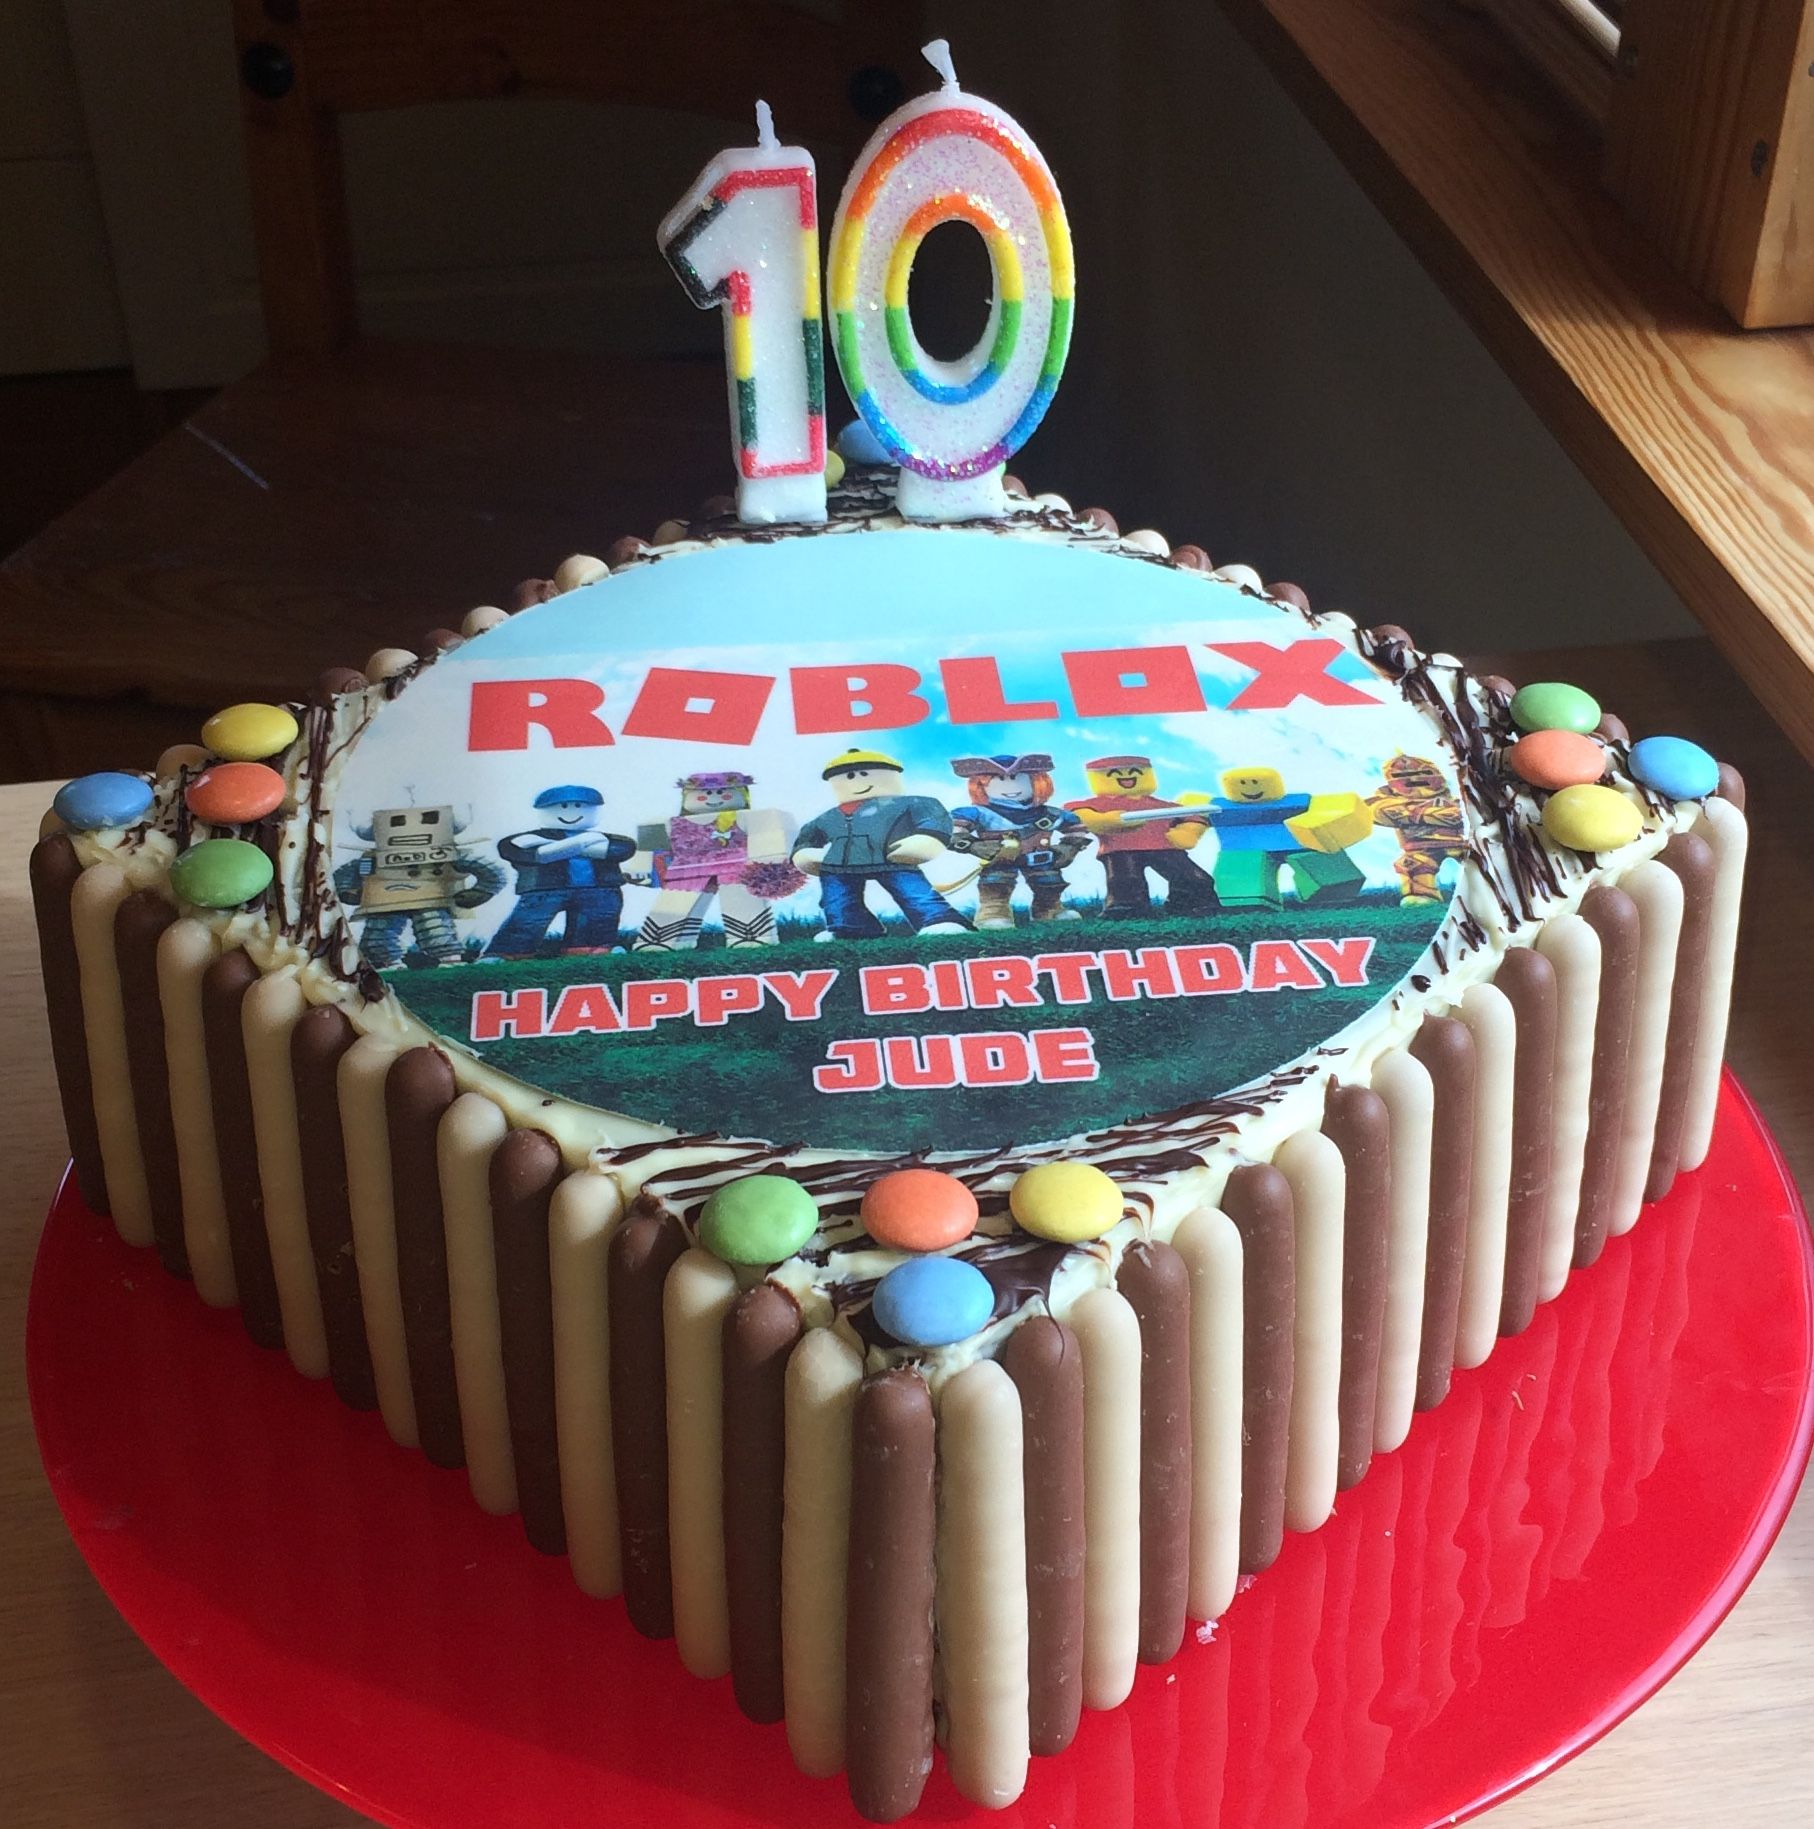 Roblox Birthday Cake For My 10 Year Old Son With Images Roblox